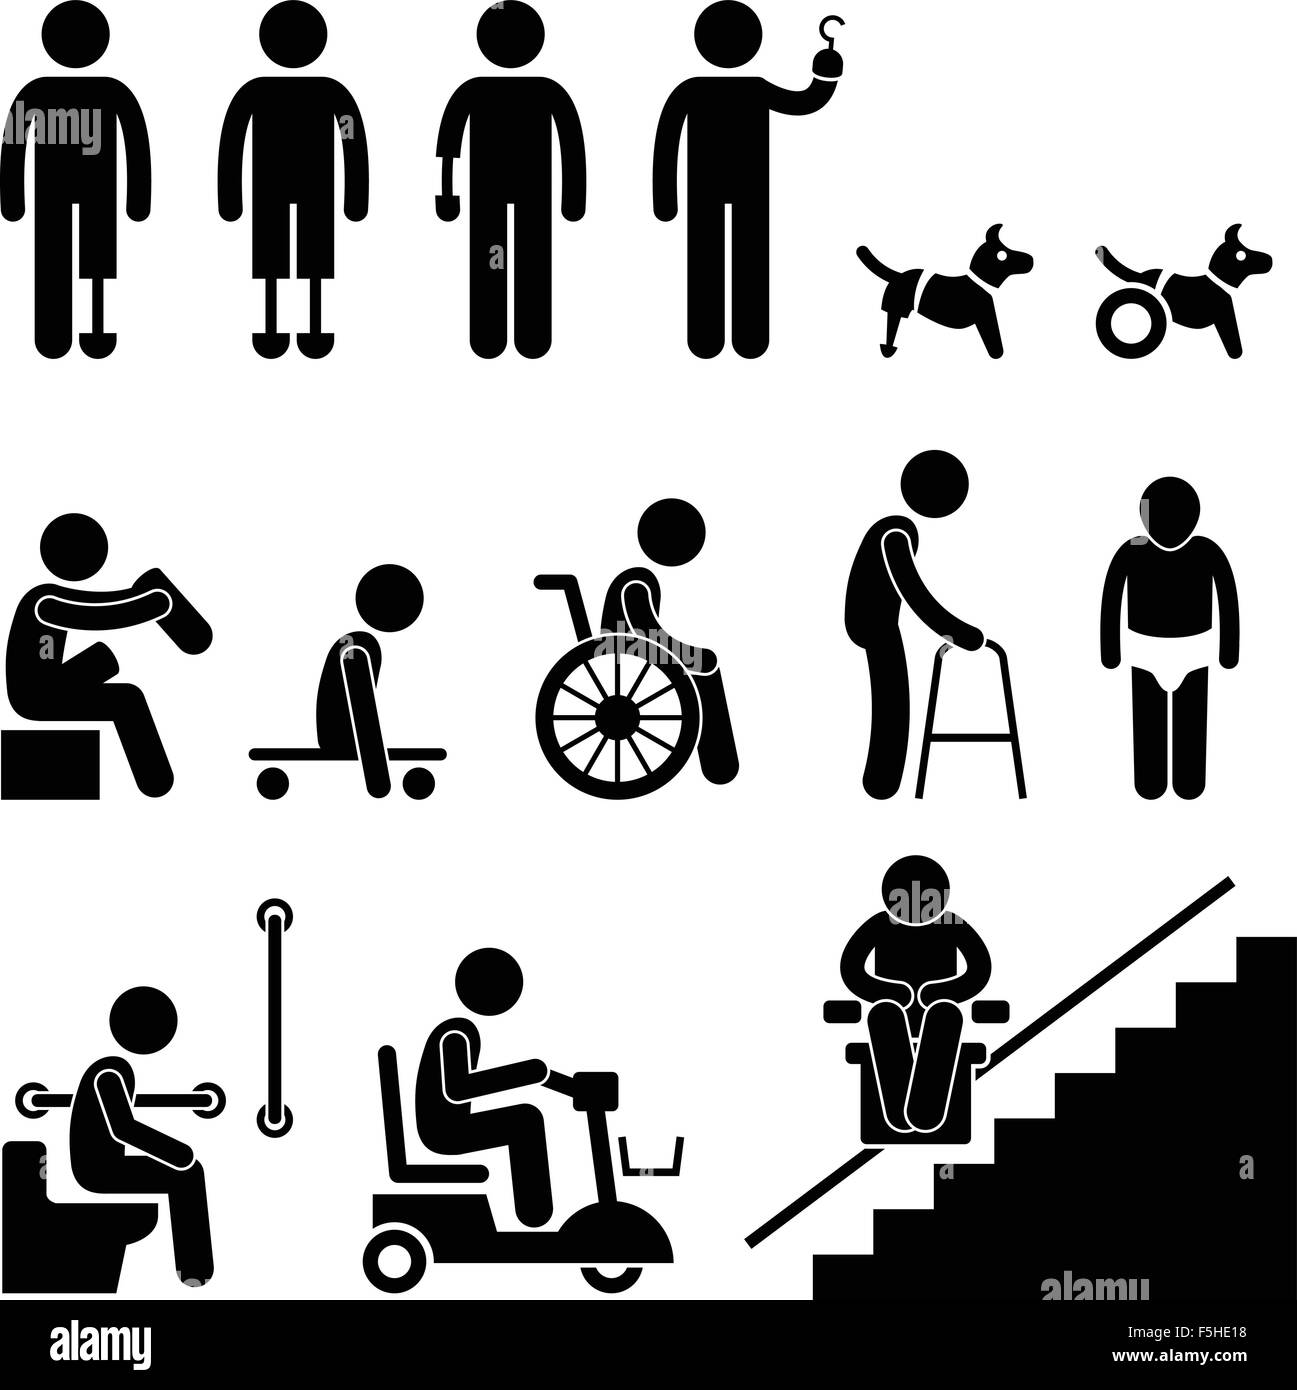 Disability equipment black and white stock photos images alamy amputee handicap disable man tool equipment stick figure pictogram icon stock image biocorpaavc